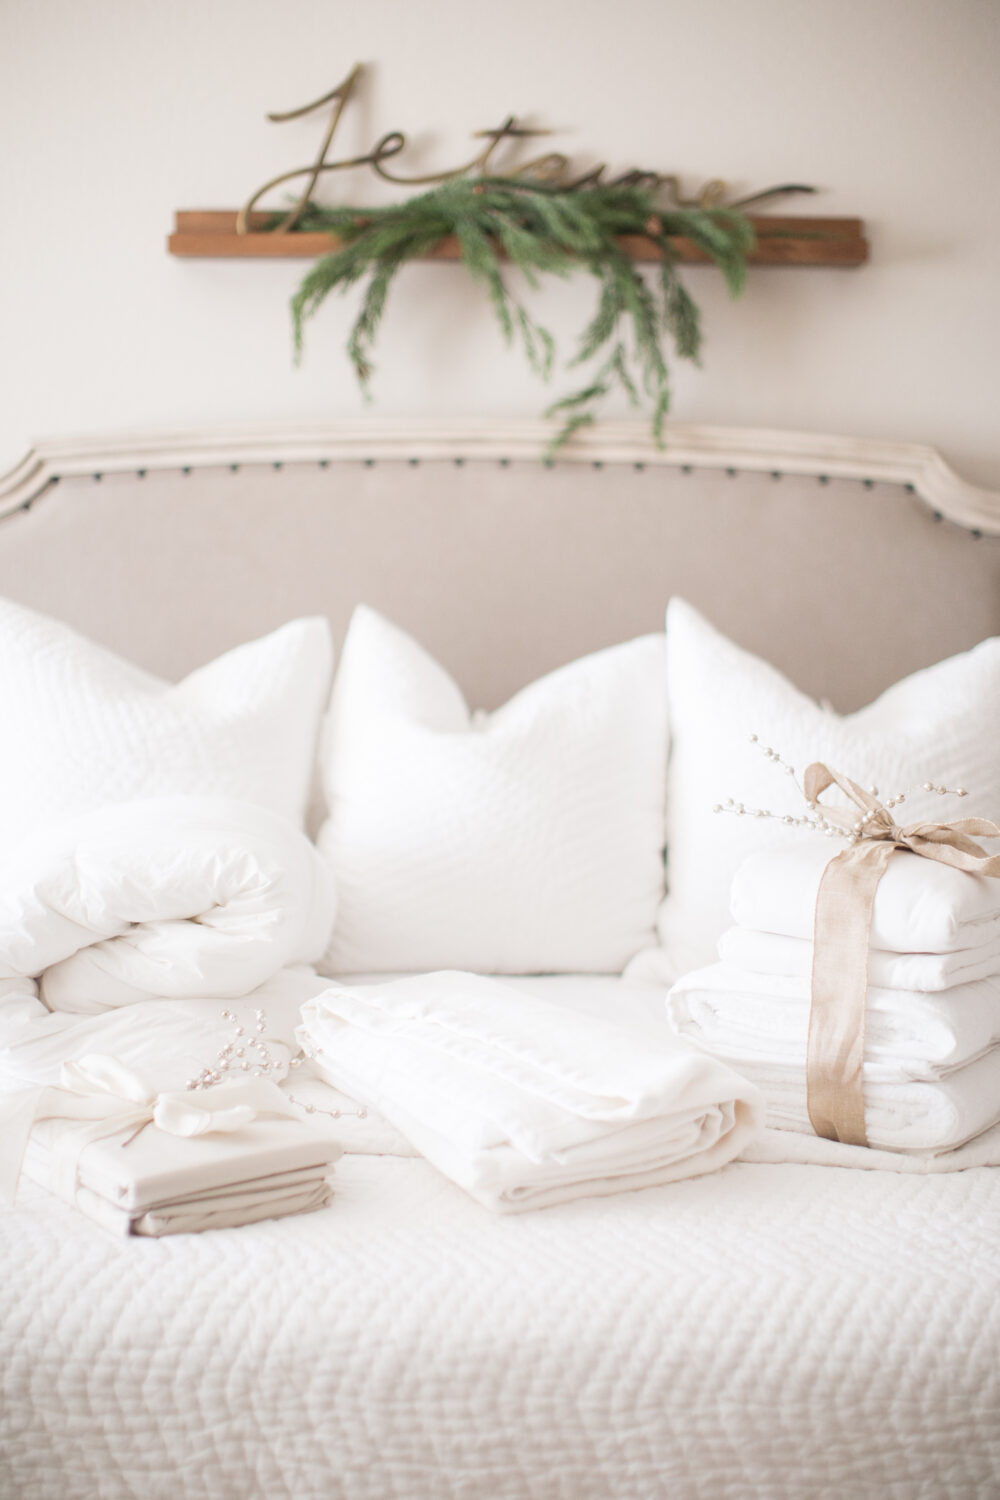 A Cozy Christmas Gift Guide with The Home Depot x The Company Store